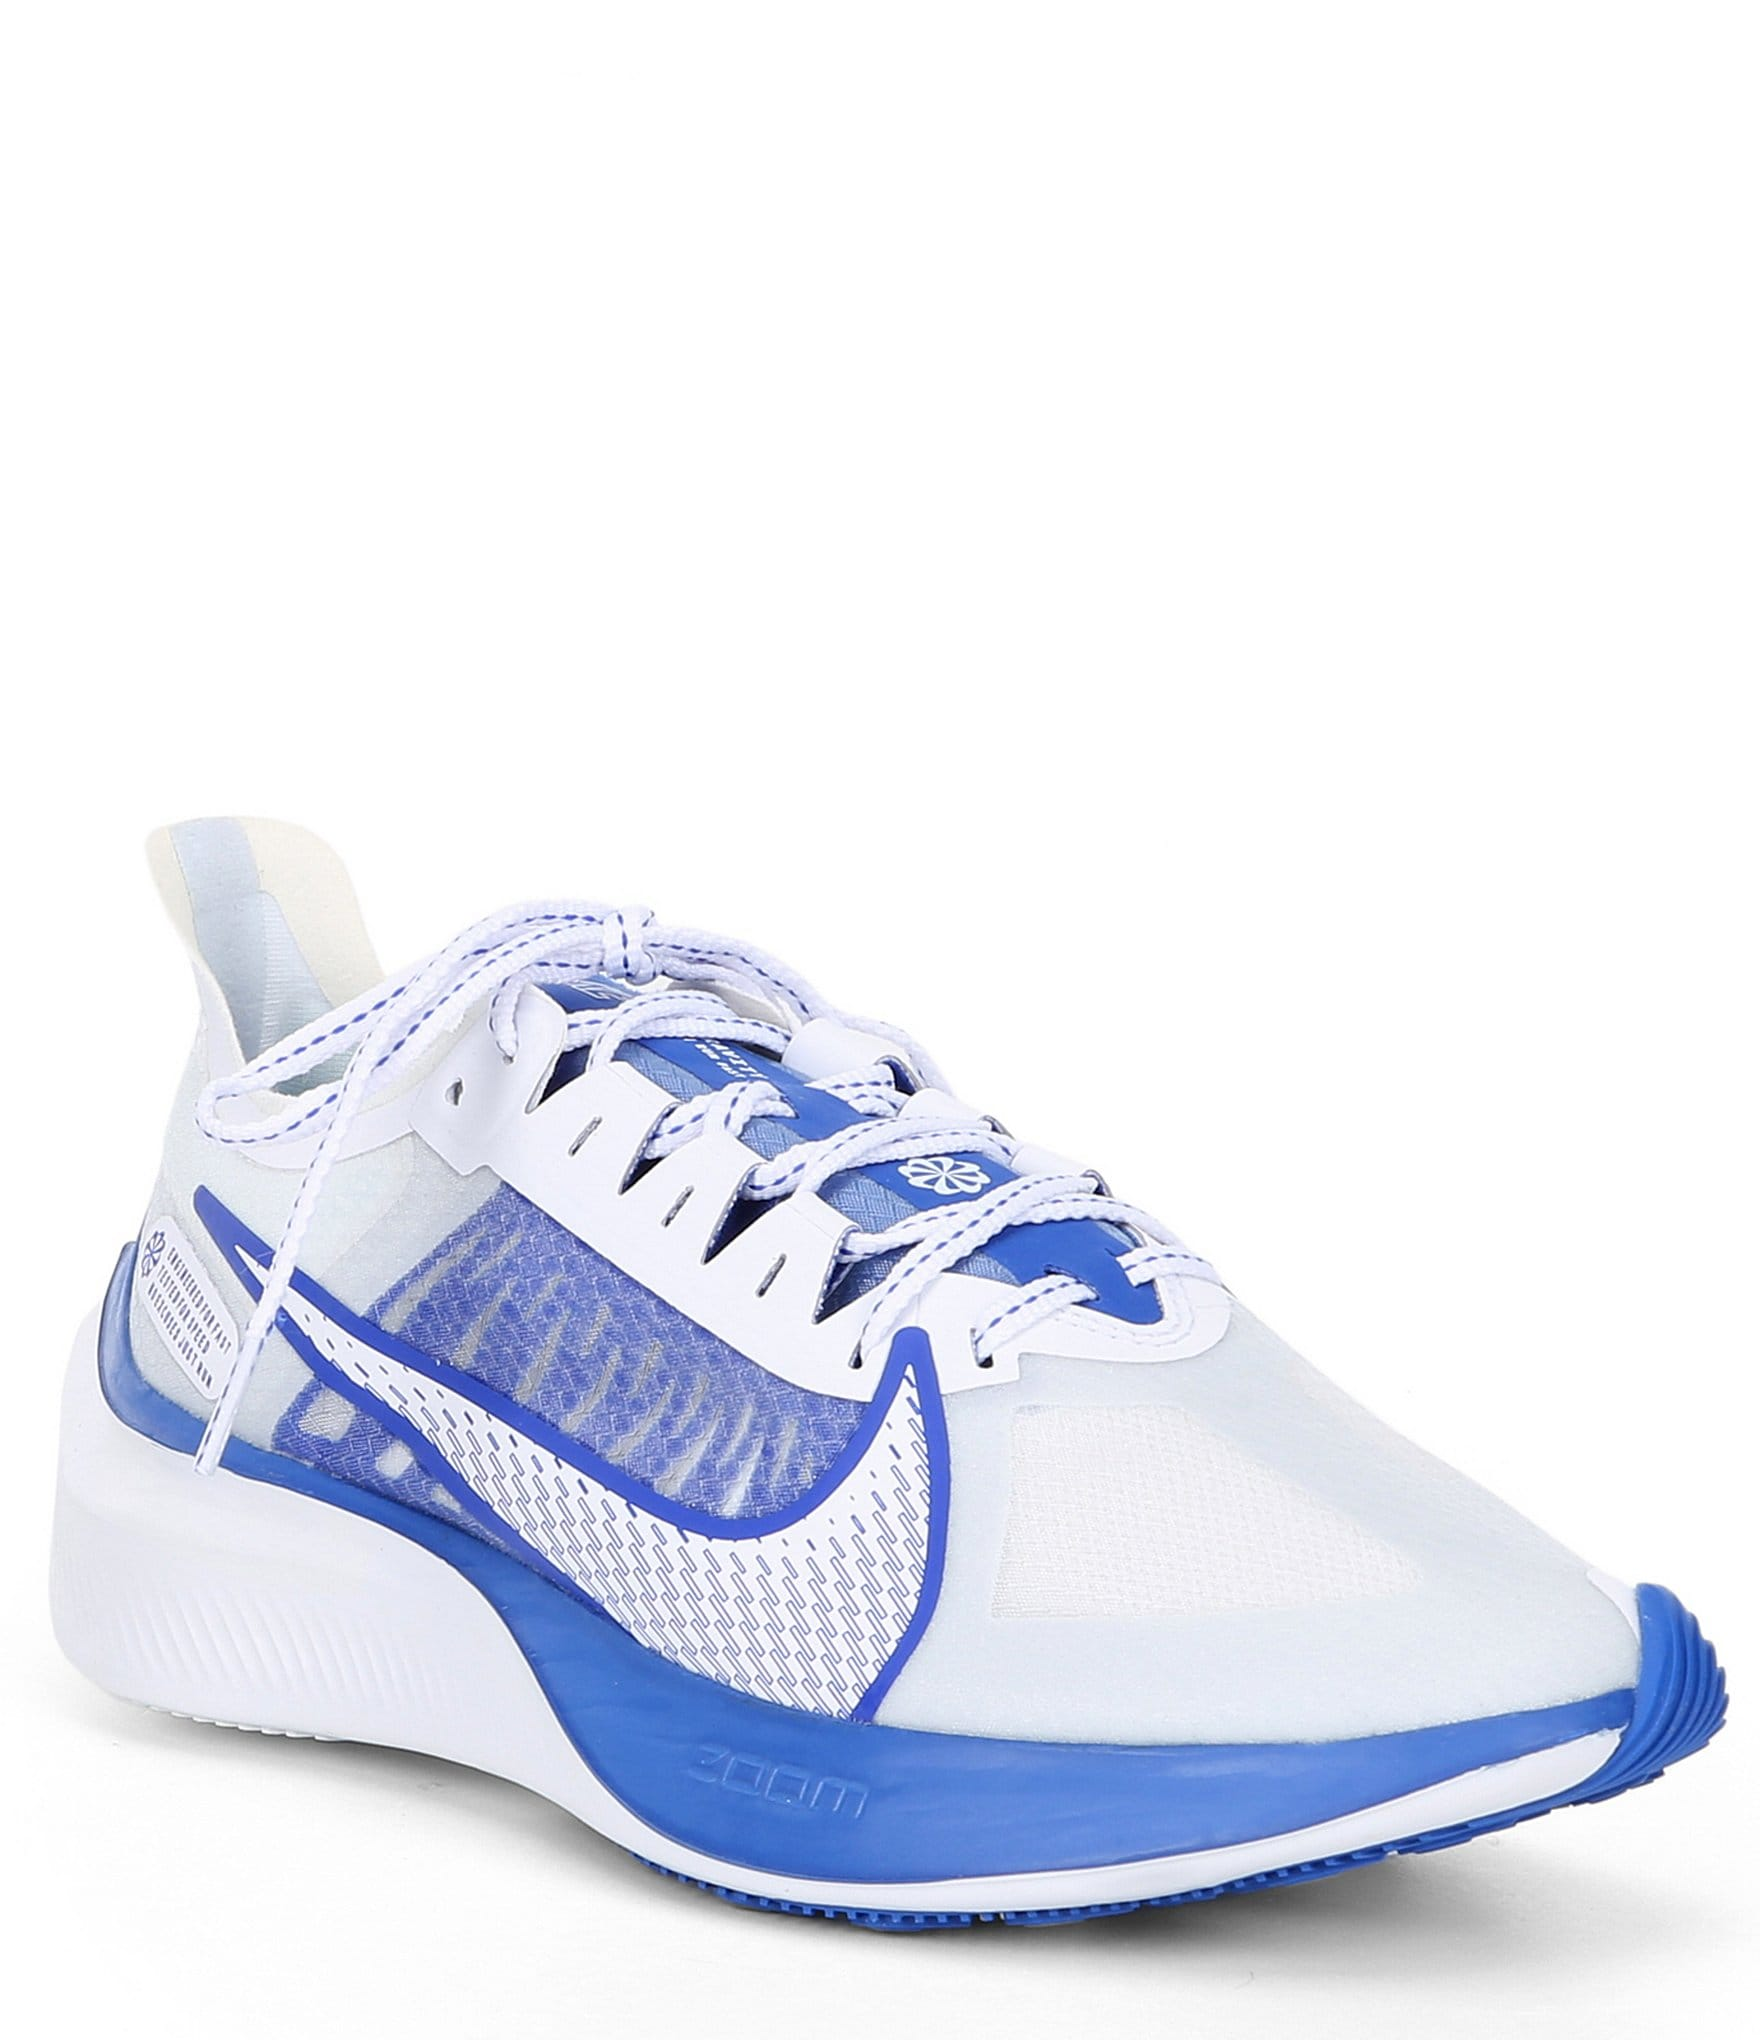 fb1417eb9622a Nike Men's Zoom Gravity Running Shoe